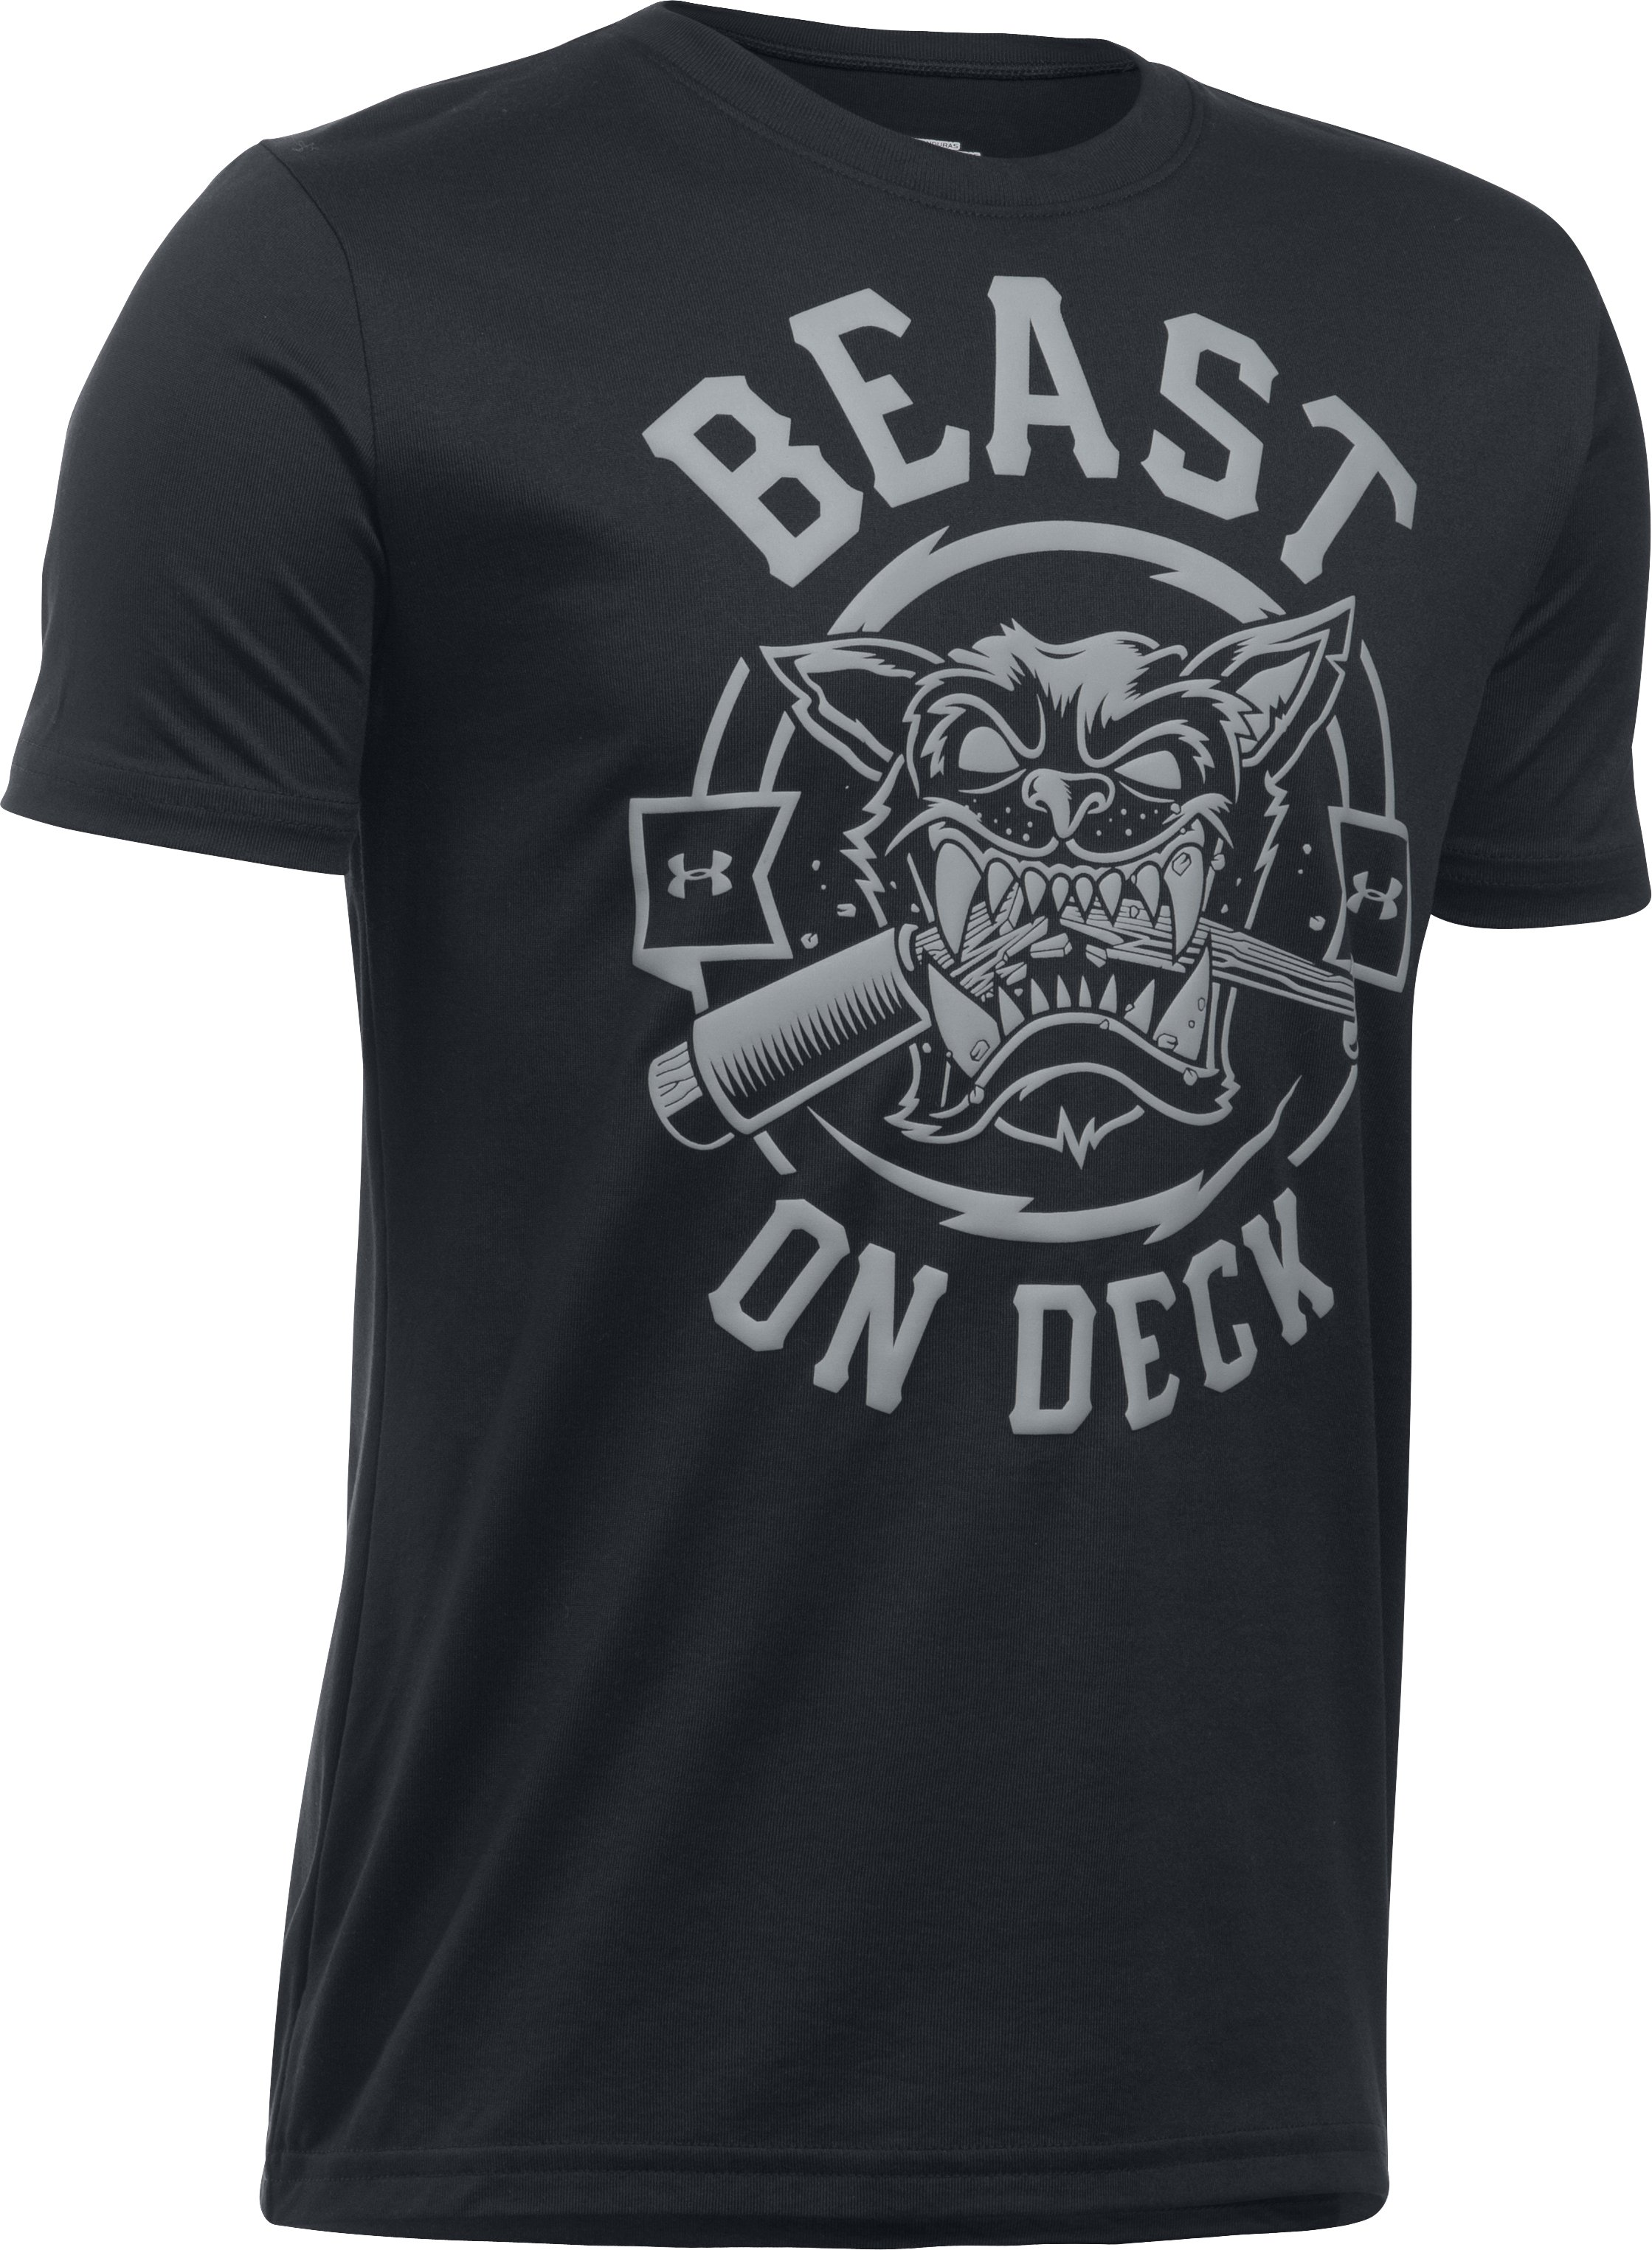 Boys' UA Beast On Deck T-Shirt, Black